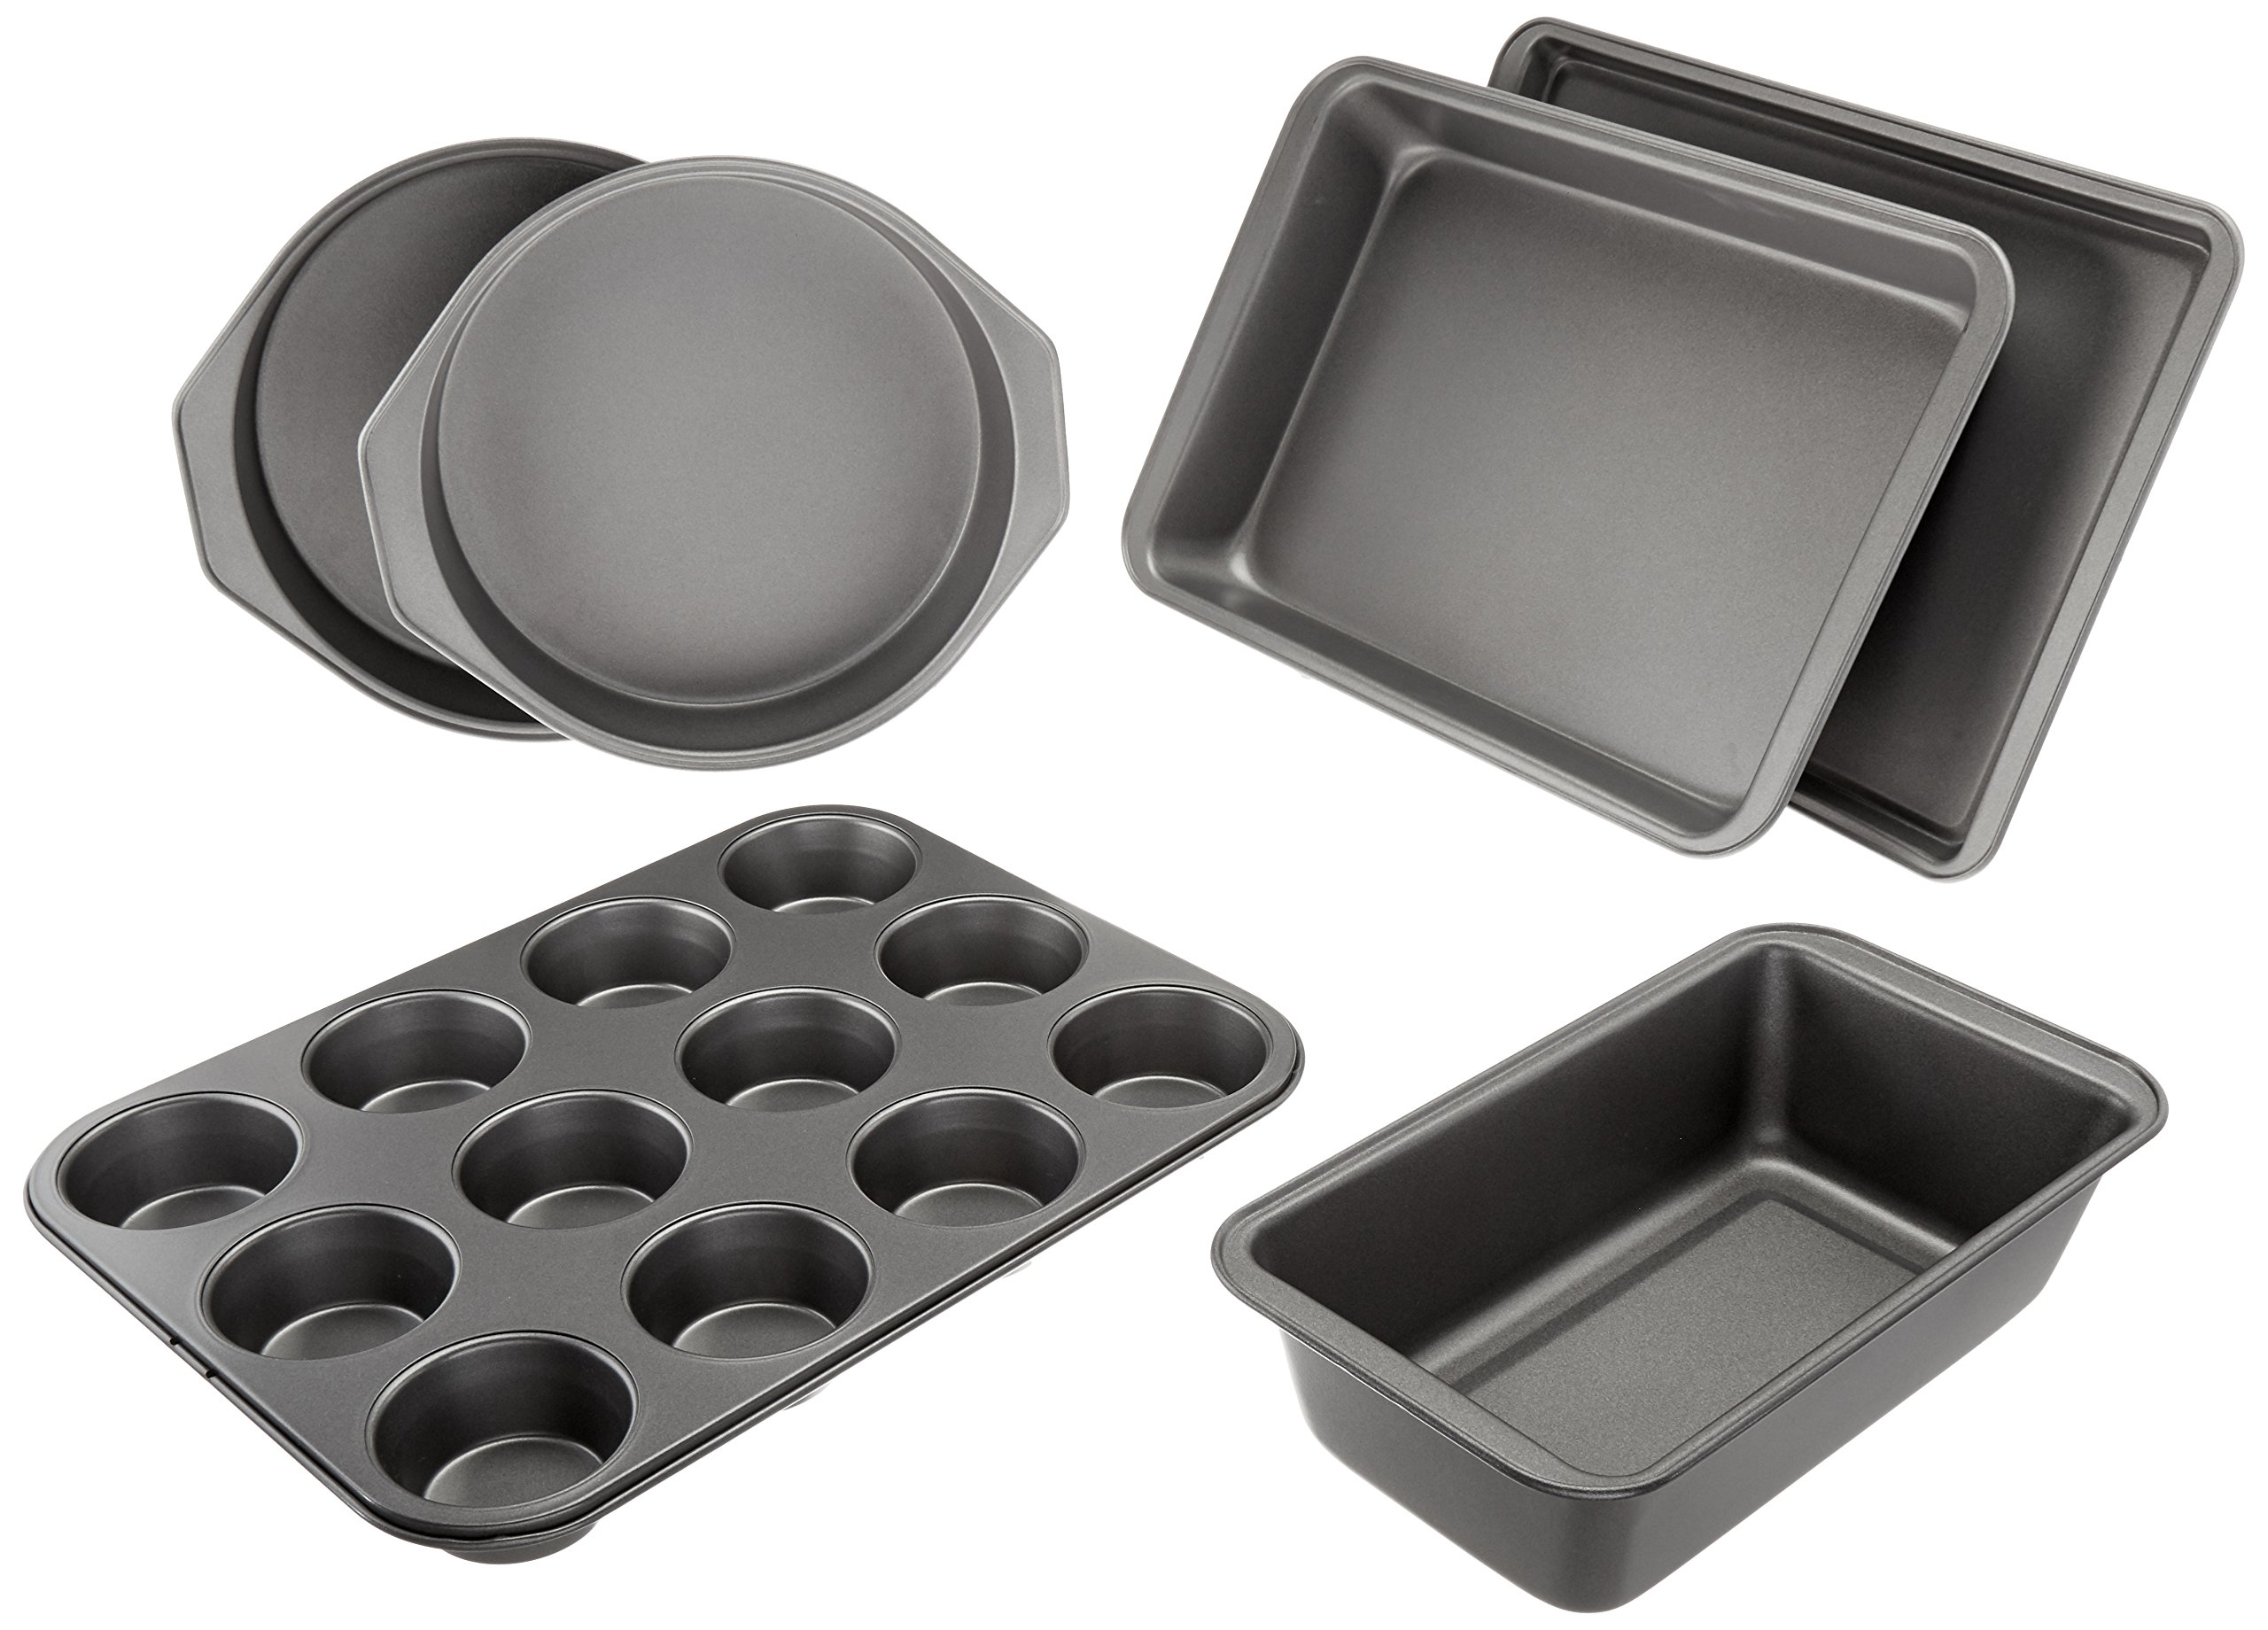 AmazonBasics 6-Piece Nonstick Bakeware Set by AmazonBasics (Image #1)